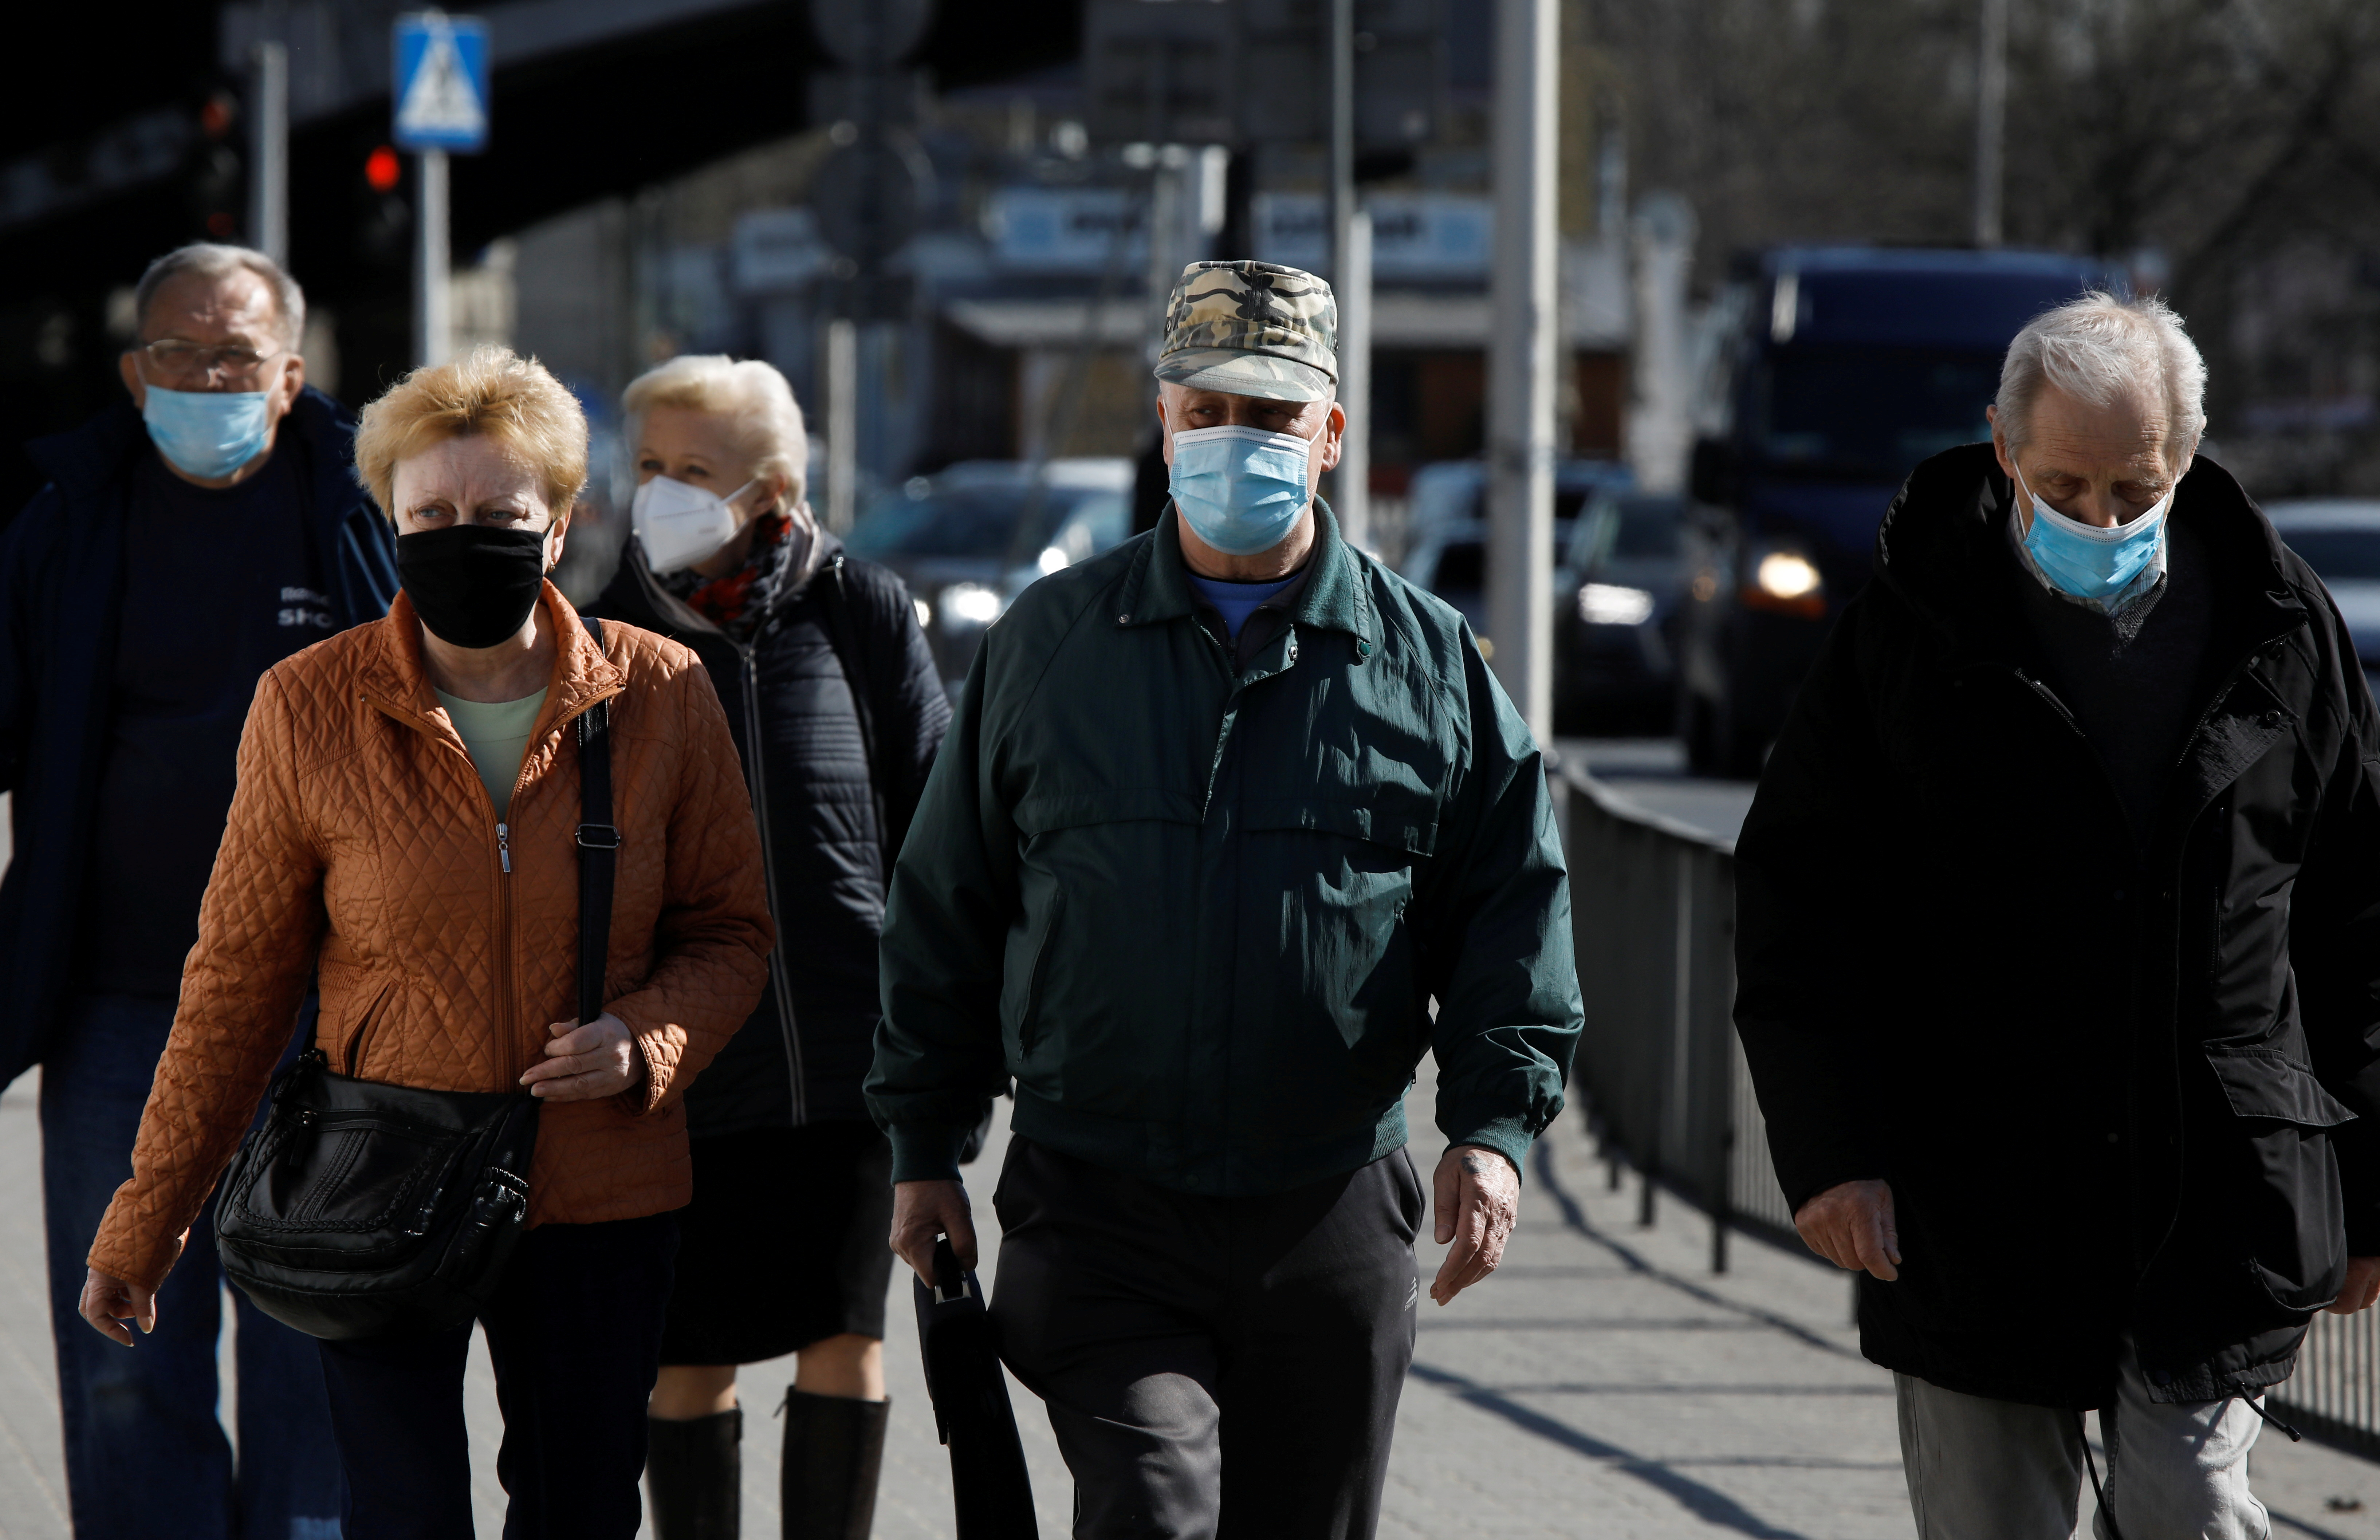 People wearing protective masks walk in Warsaw, Poland, April 2, 2021. REUTERS/Kacper Pempel/File Photo